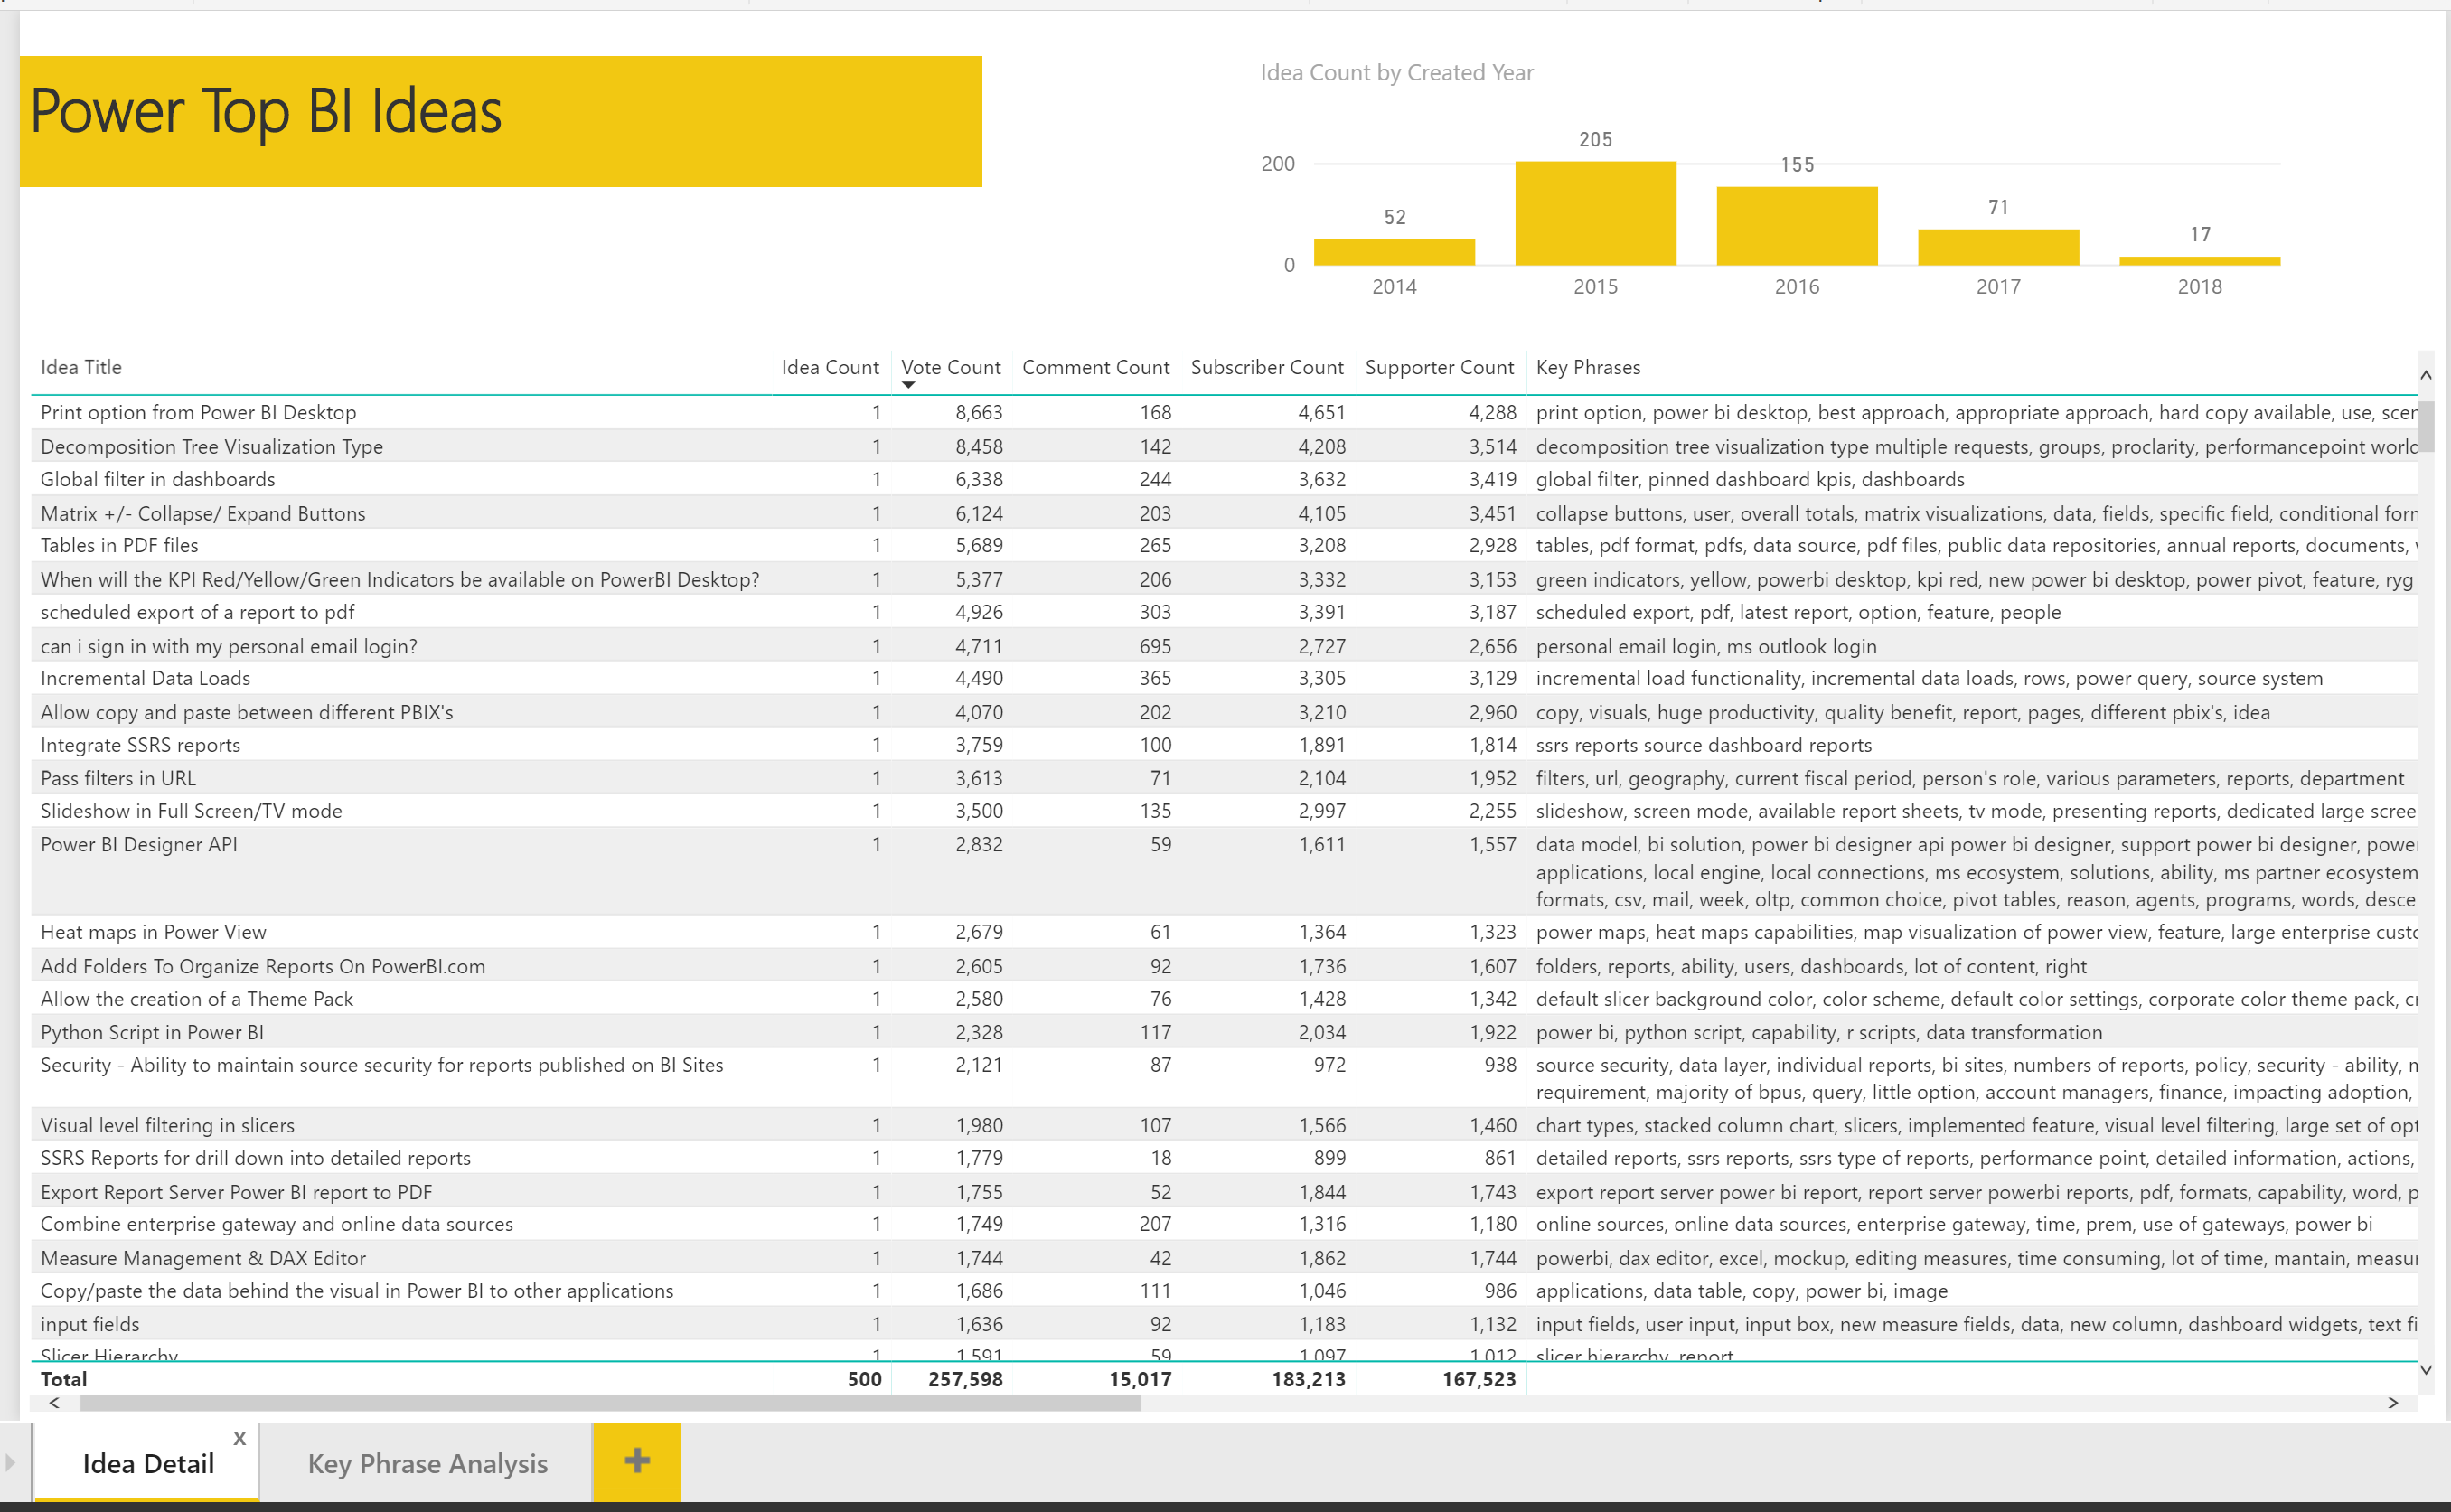 Top 500 Power BI Ideas Sorted by Vote Count